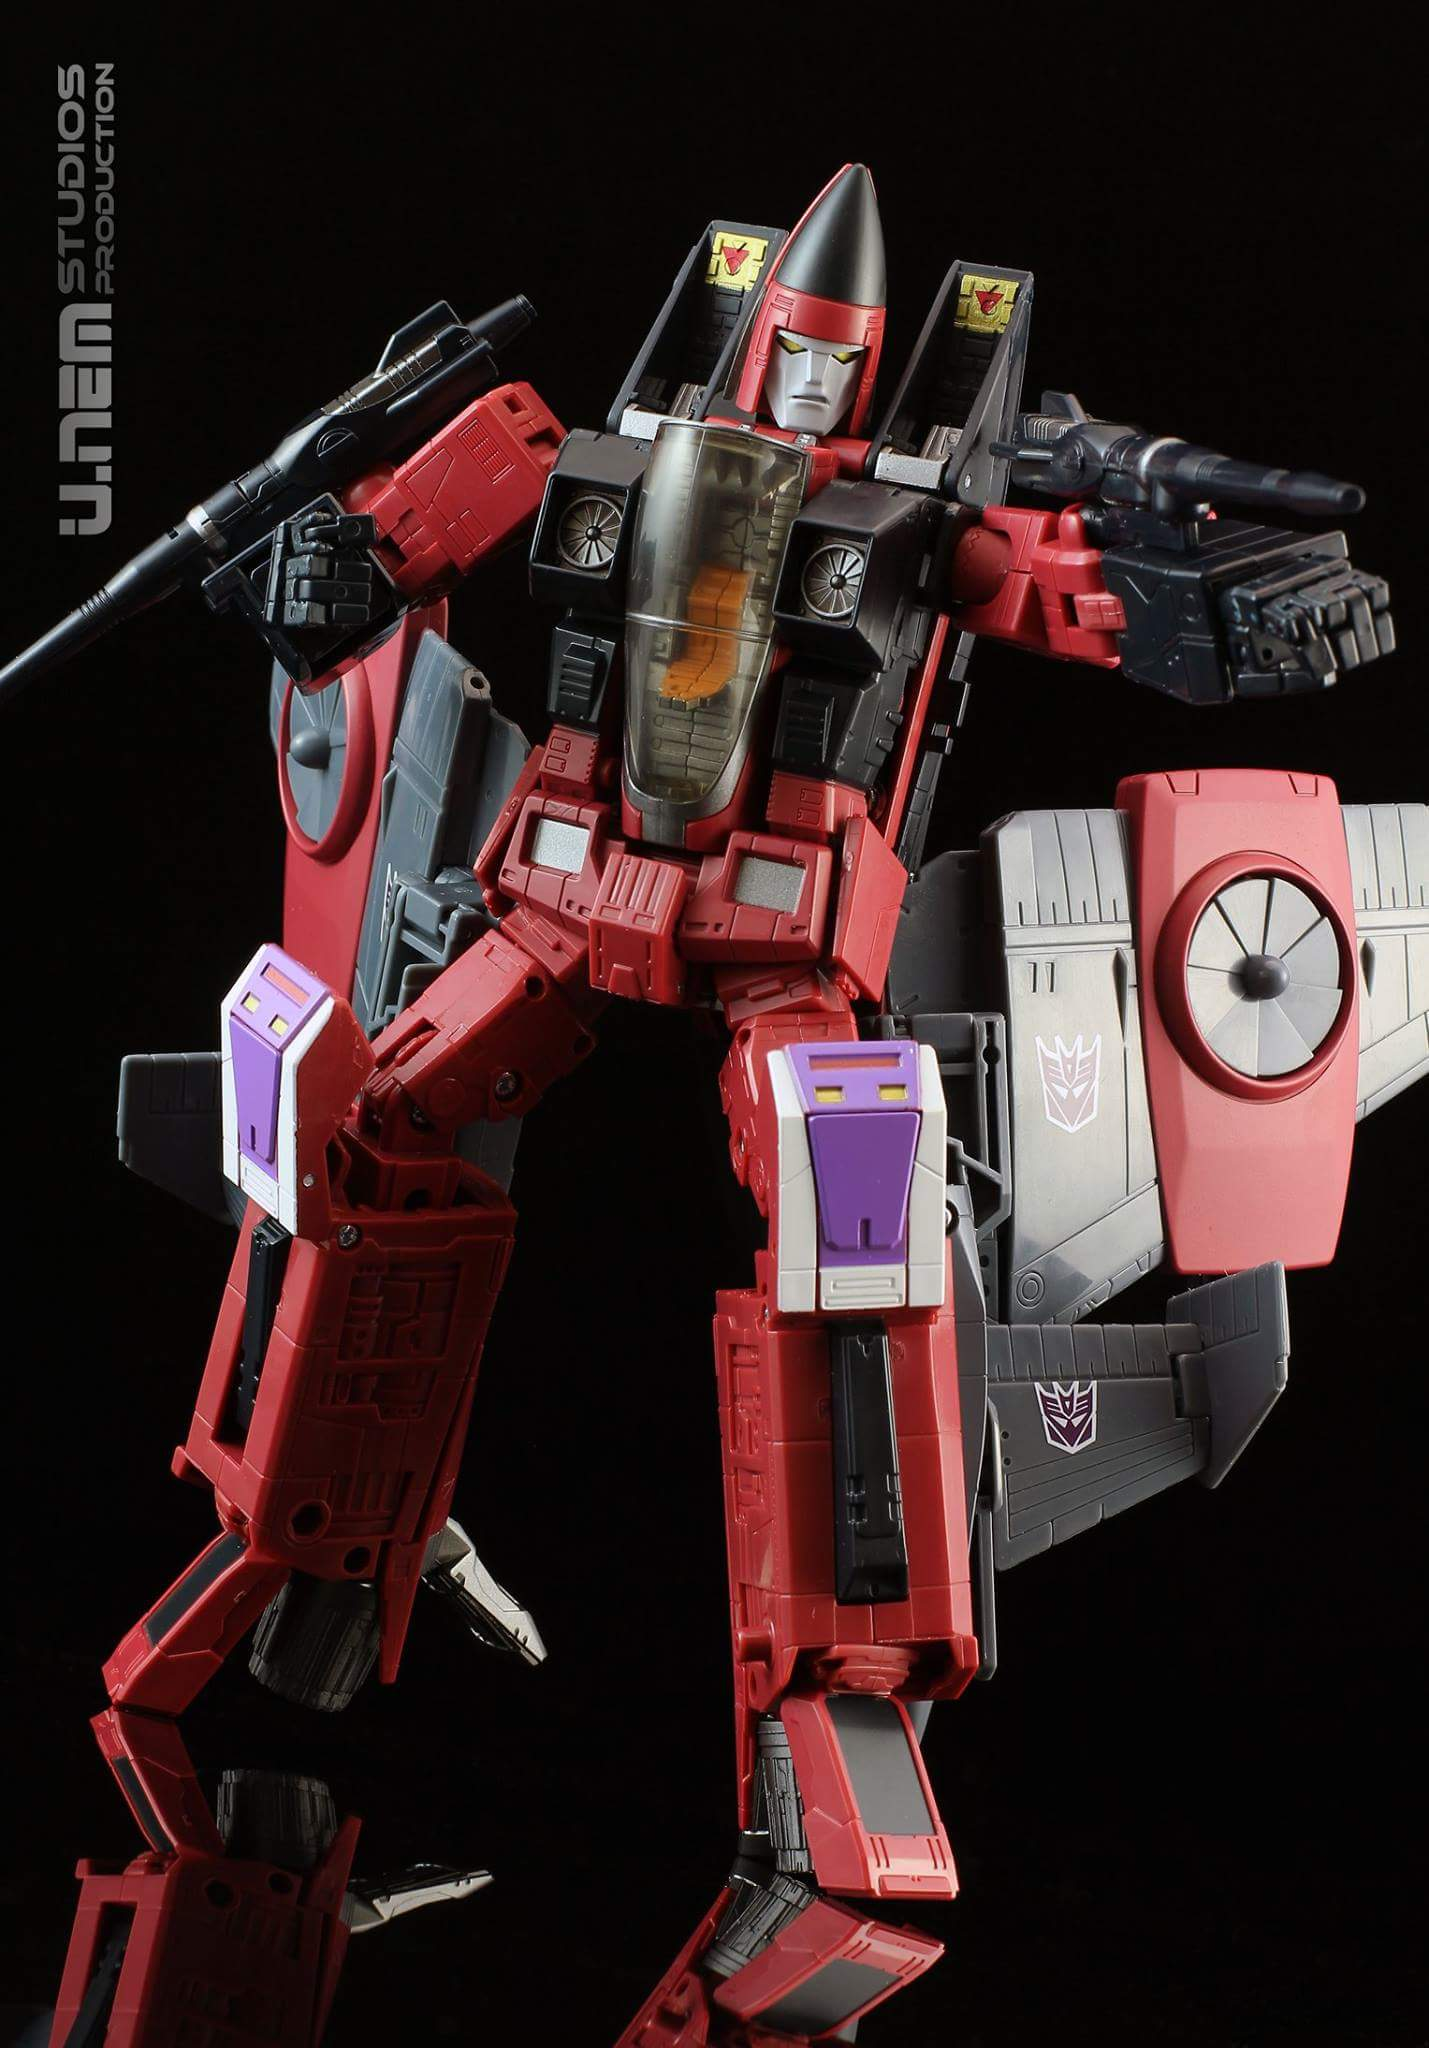 [Masterpiece] MP-11NT Thrust/Fatalo par Takara Tomy - Page 2 PqztW6hD